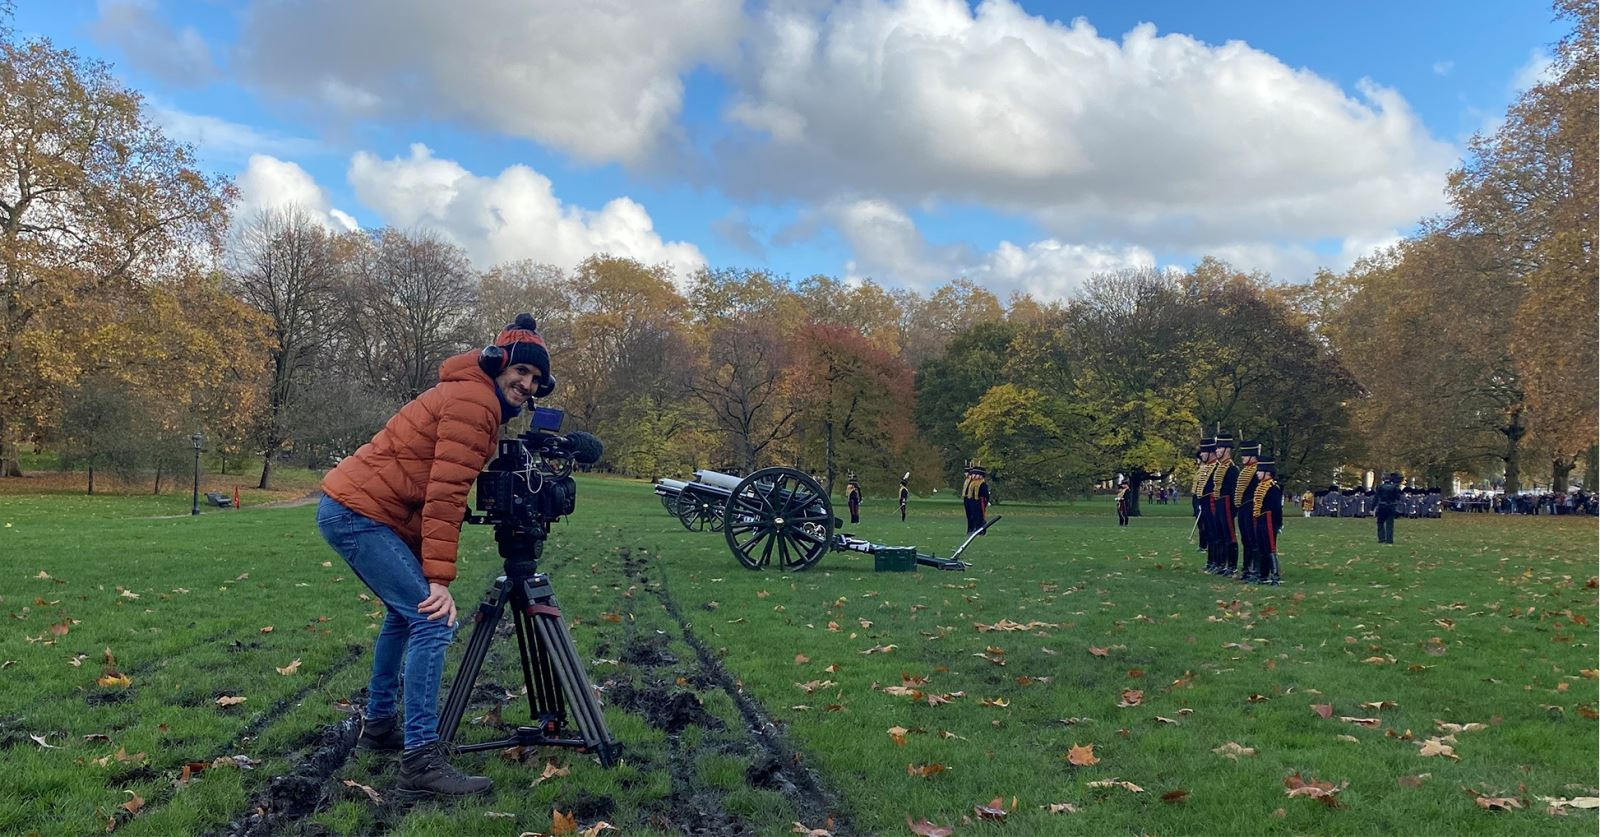 Welcome to new GTC member Nicolas Hambleton: A very loud day filming the Prince Charles Birthday Salute!